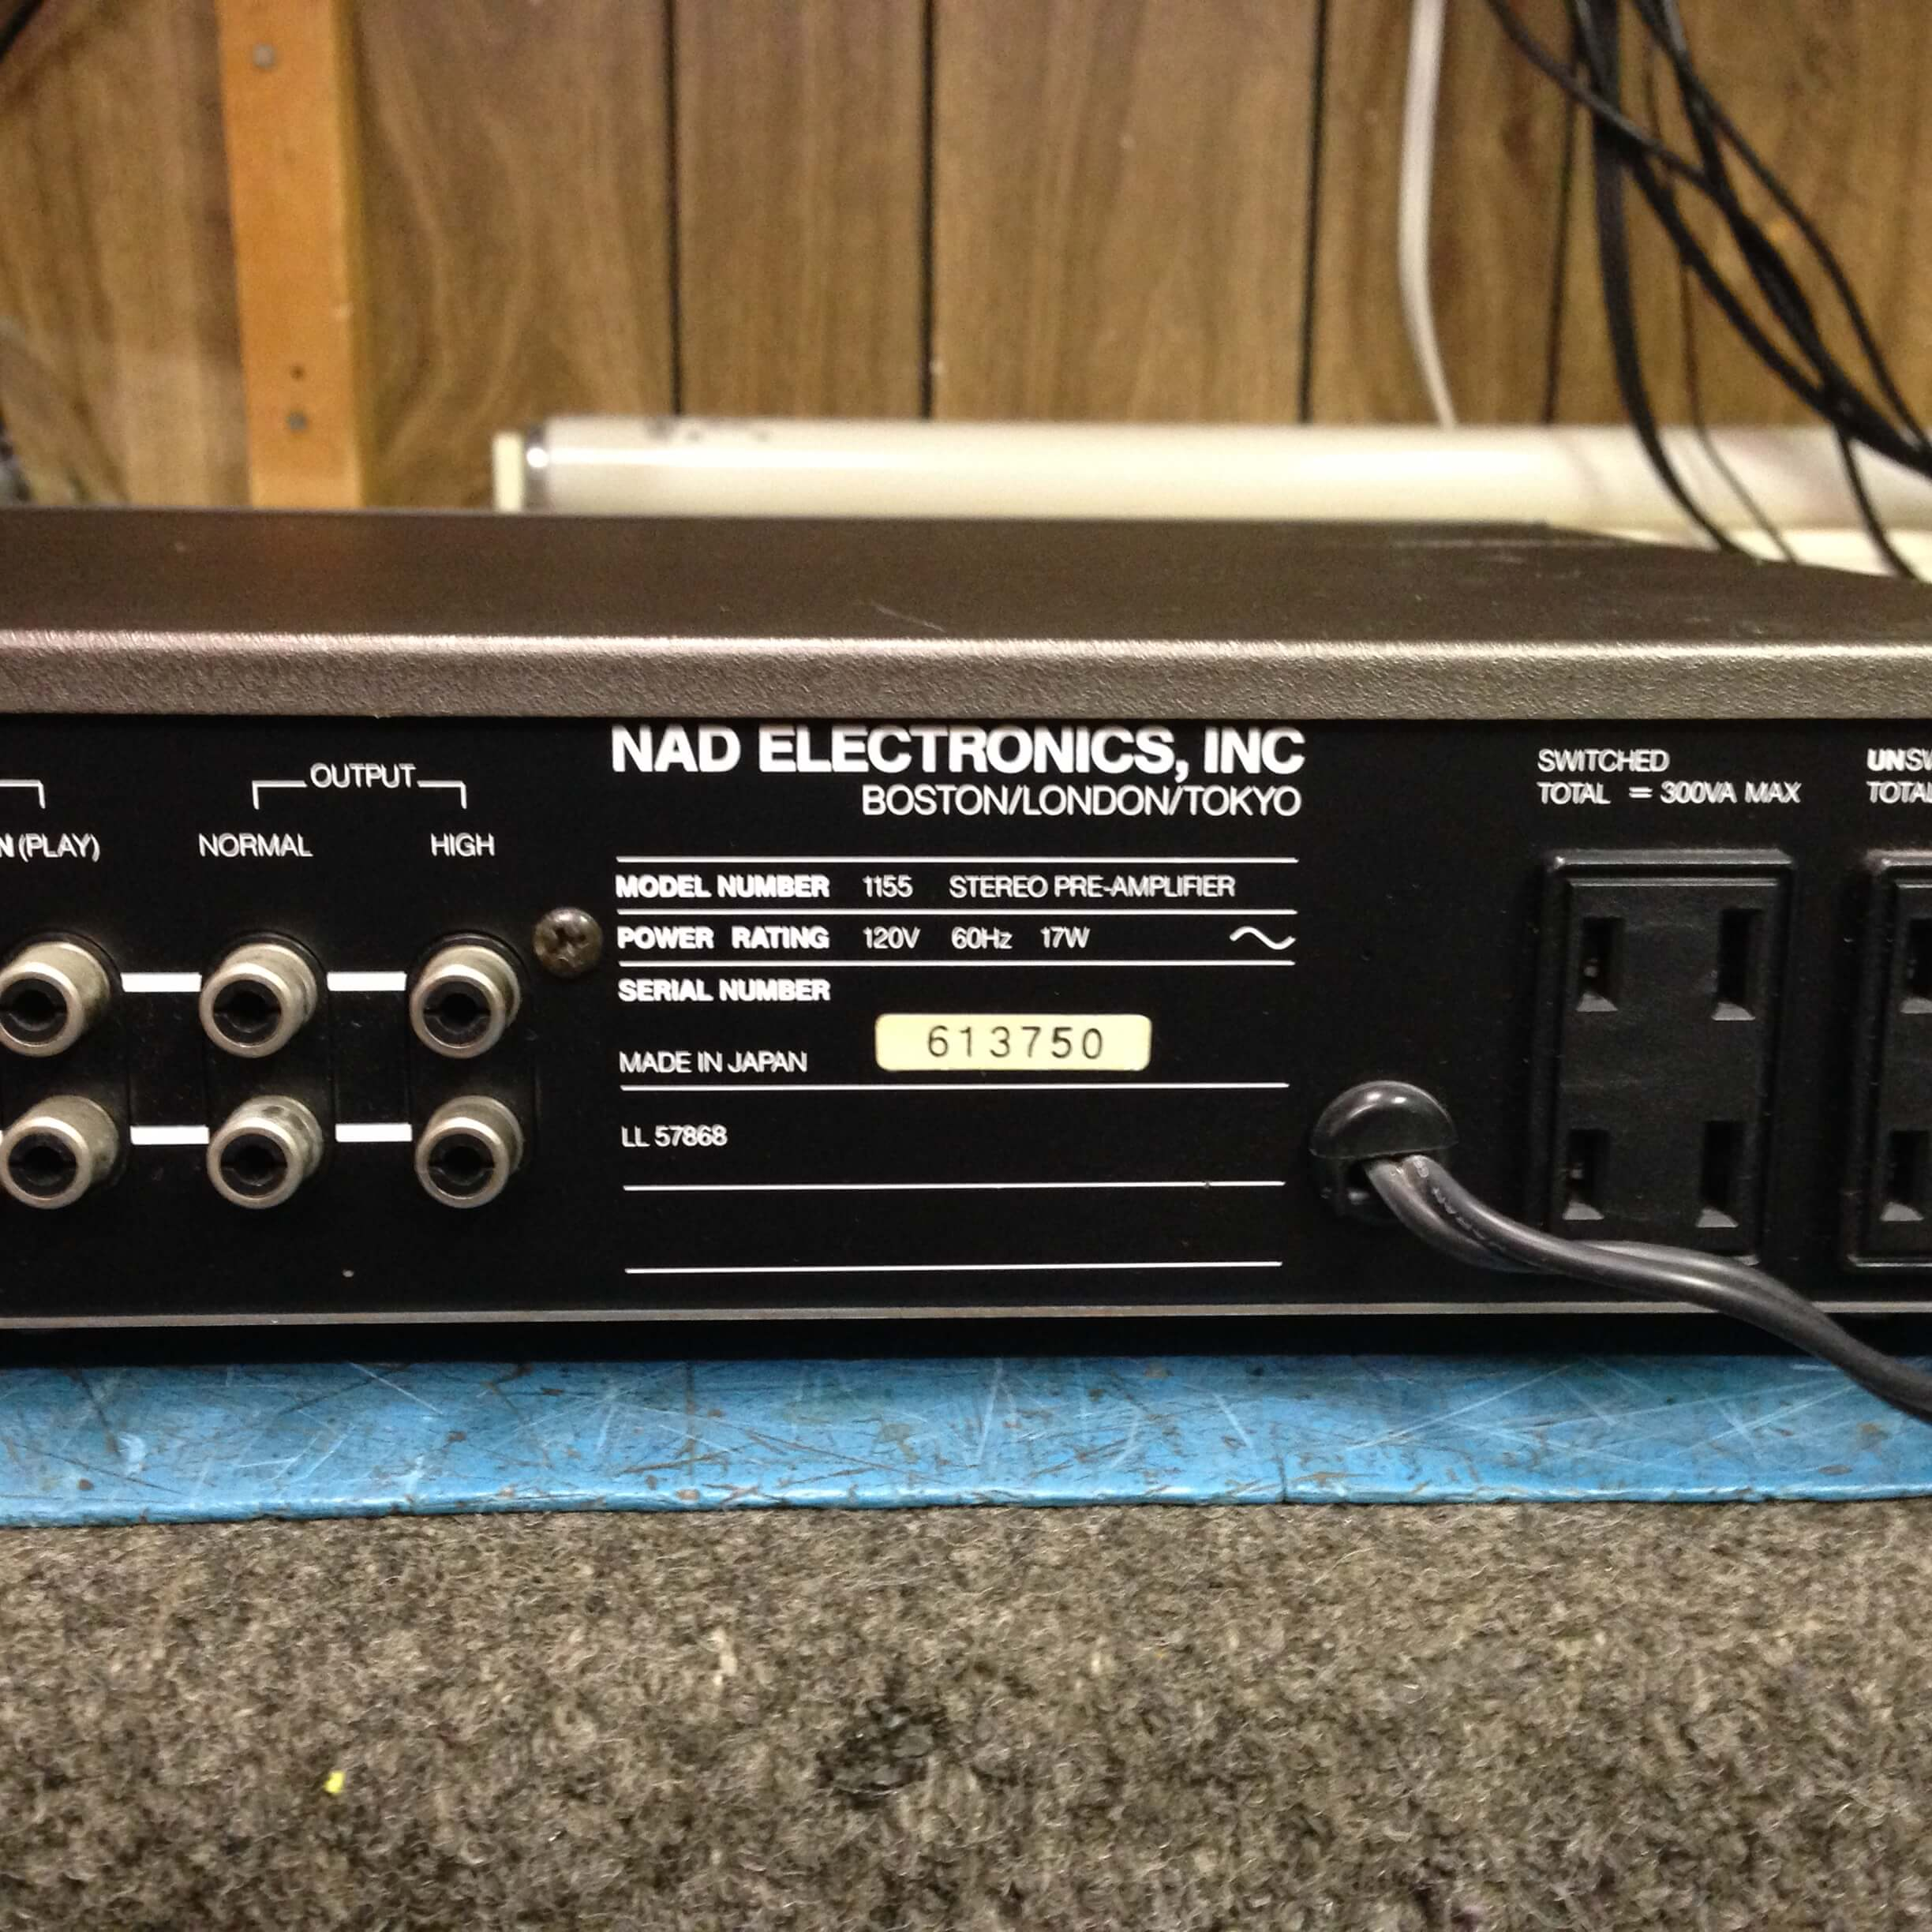 NAD 1155 Stereo Preamplifier (must be purchased with NAD 2200 & NAD 4155)